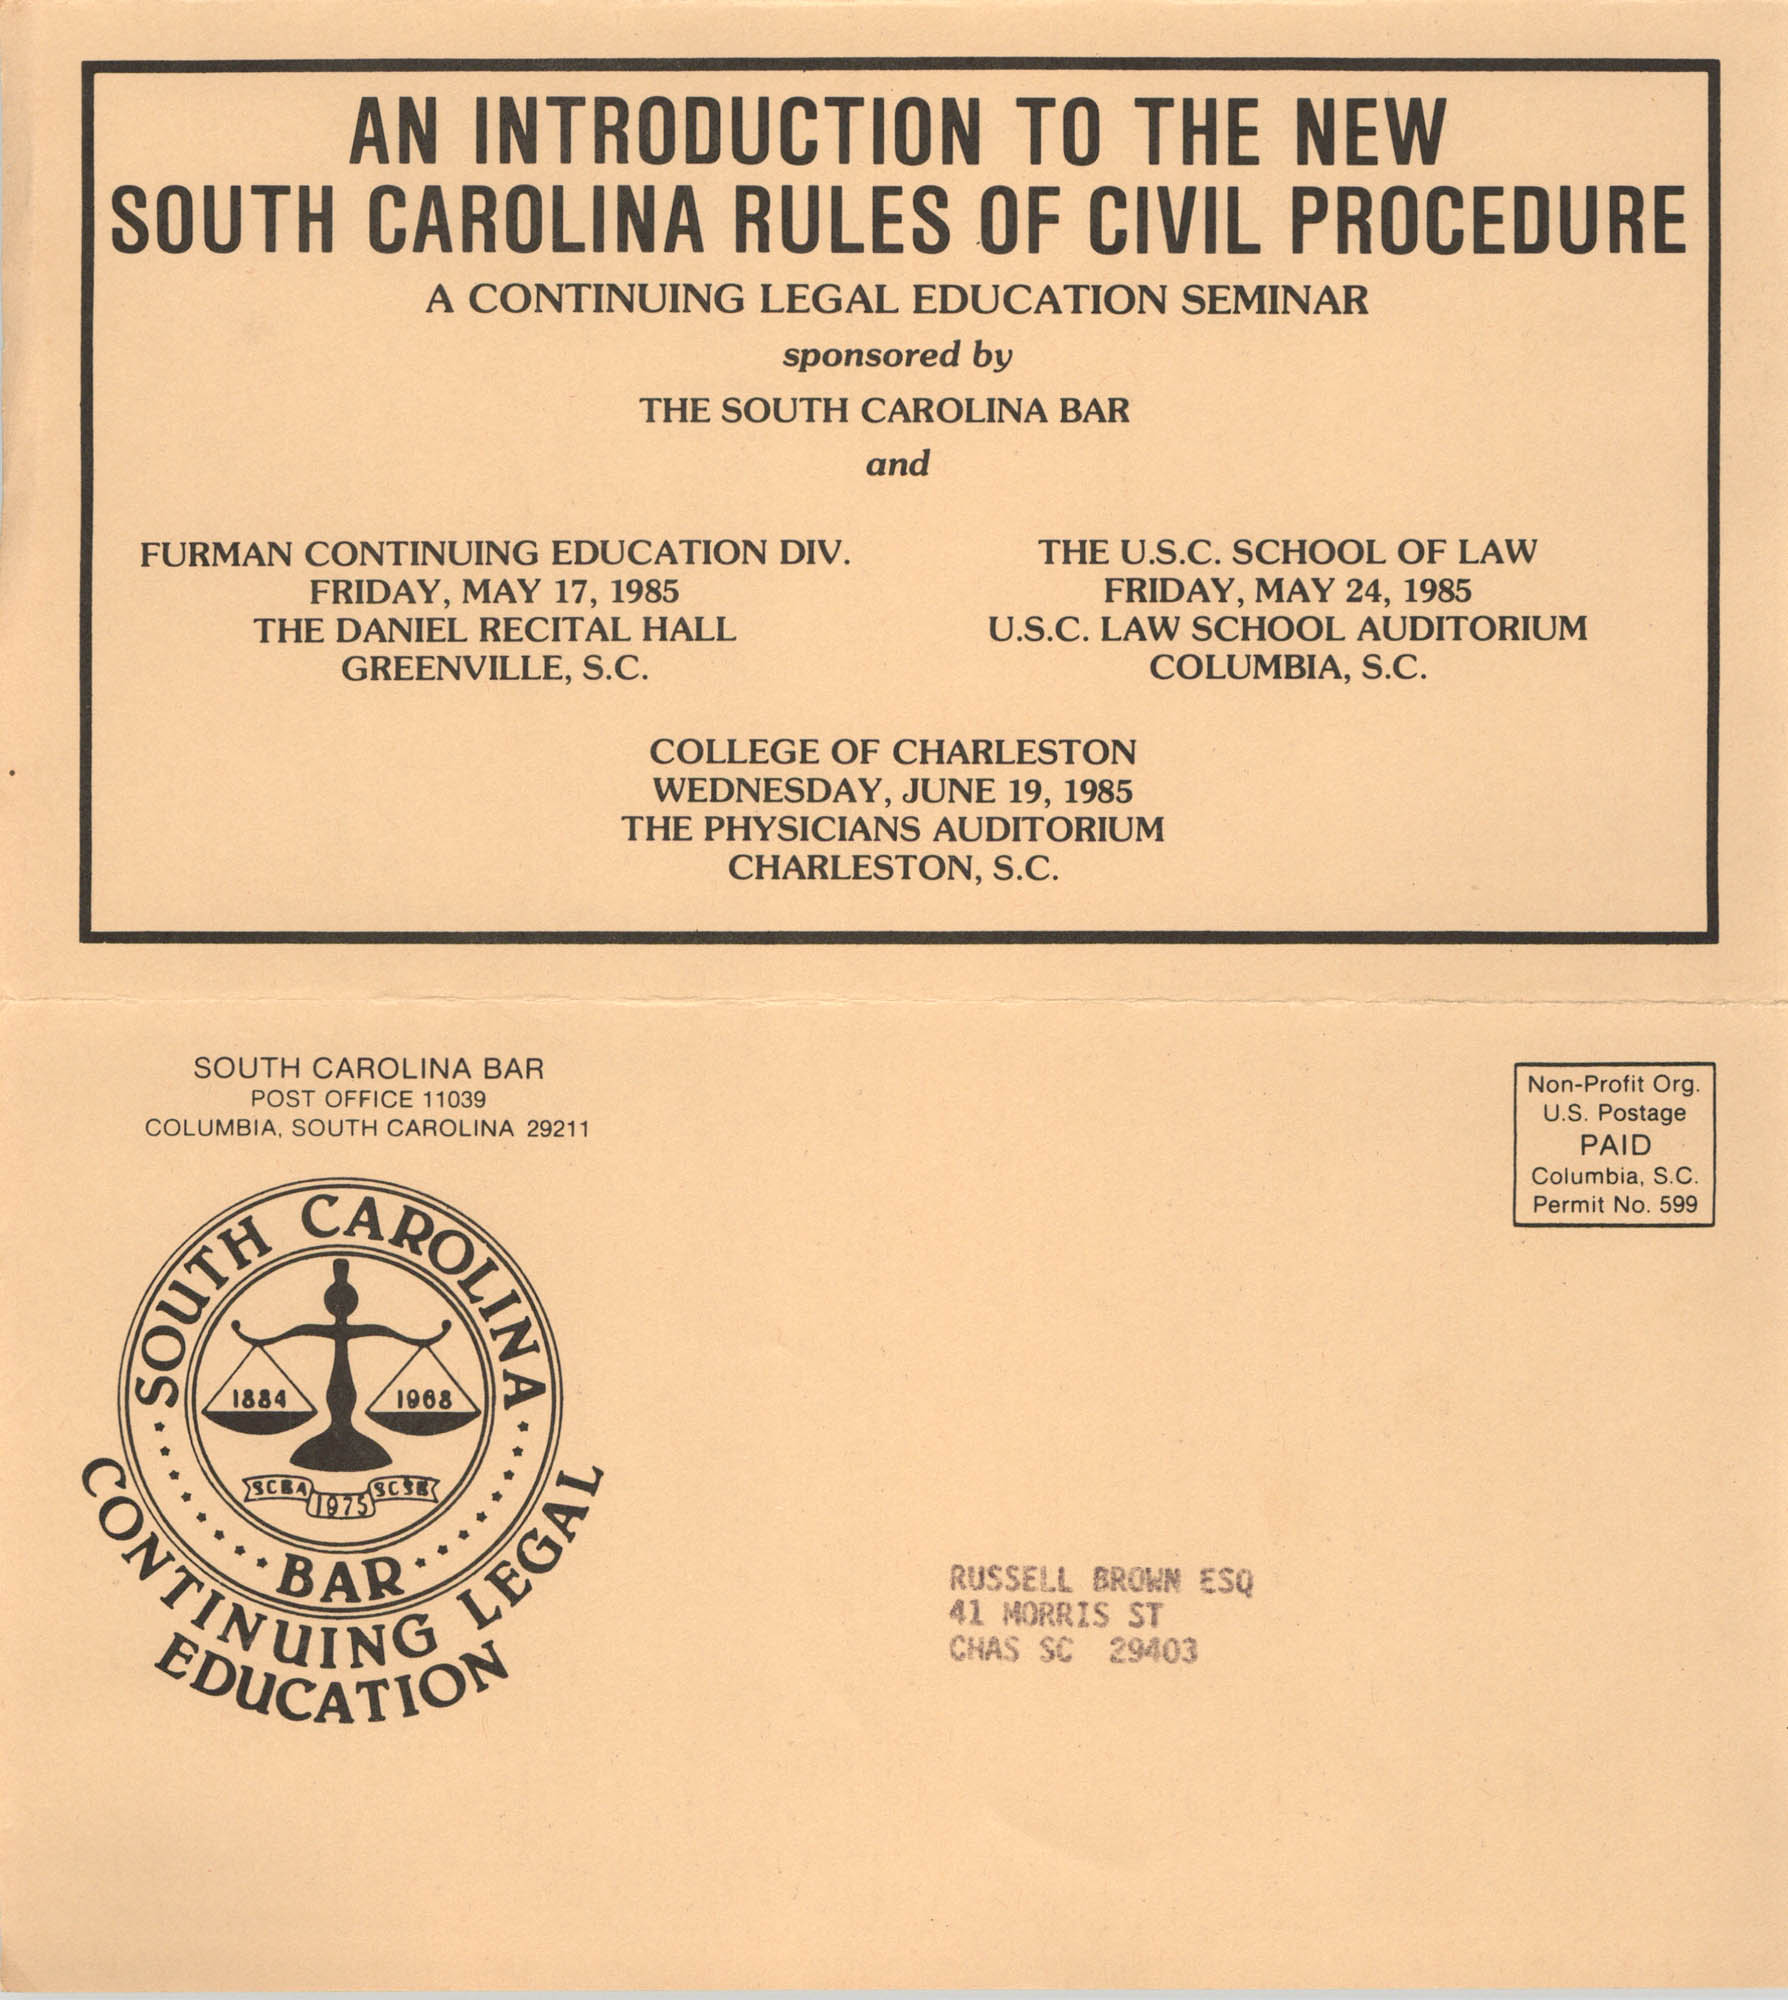 An Introduction to the New South Carolina Rules of Civil Procedure, Continuing Legal Education Seminar Pamphlet, 1985, Russell Brown